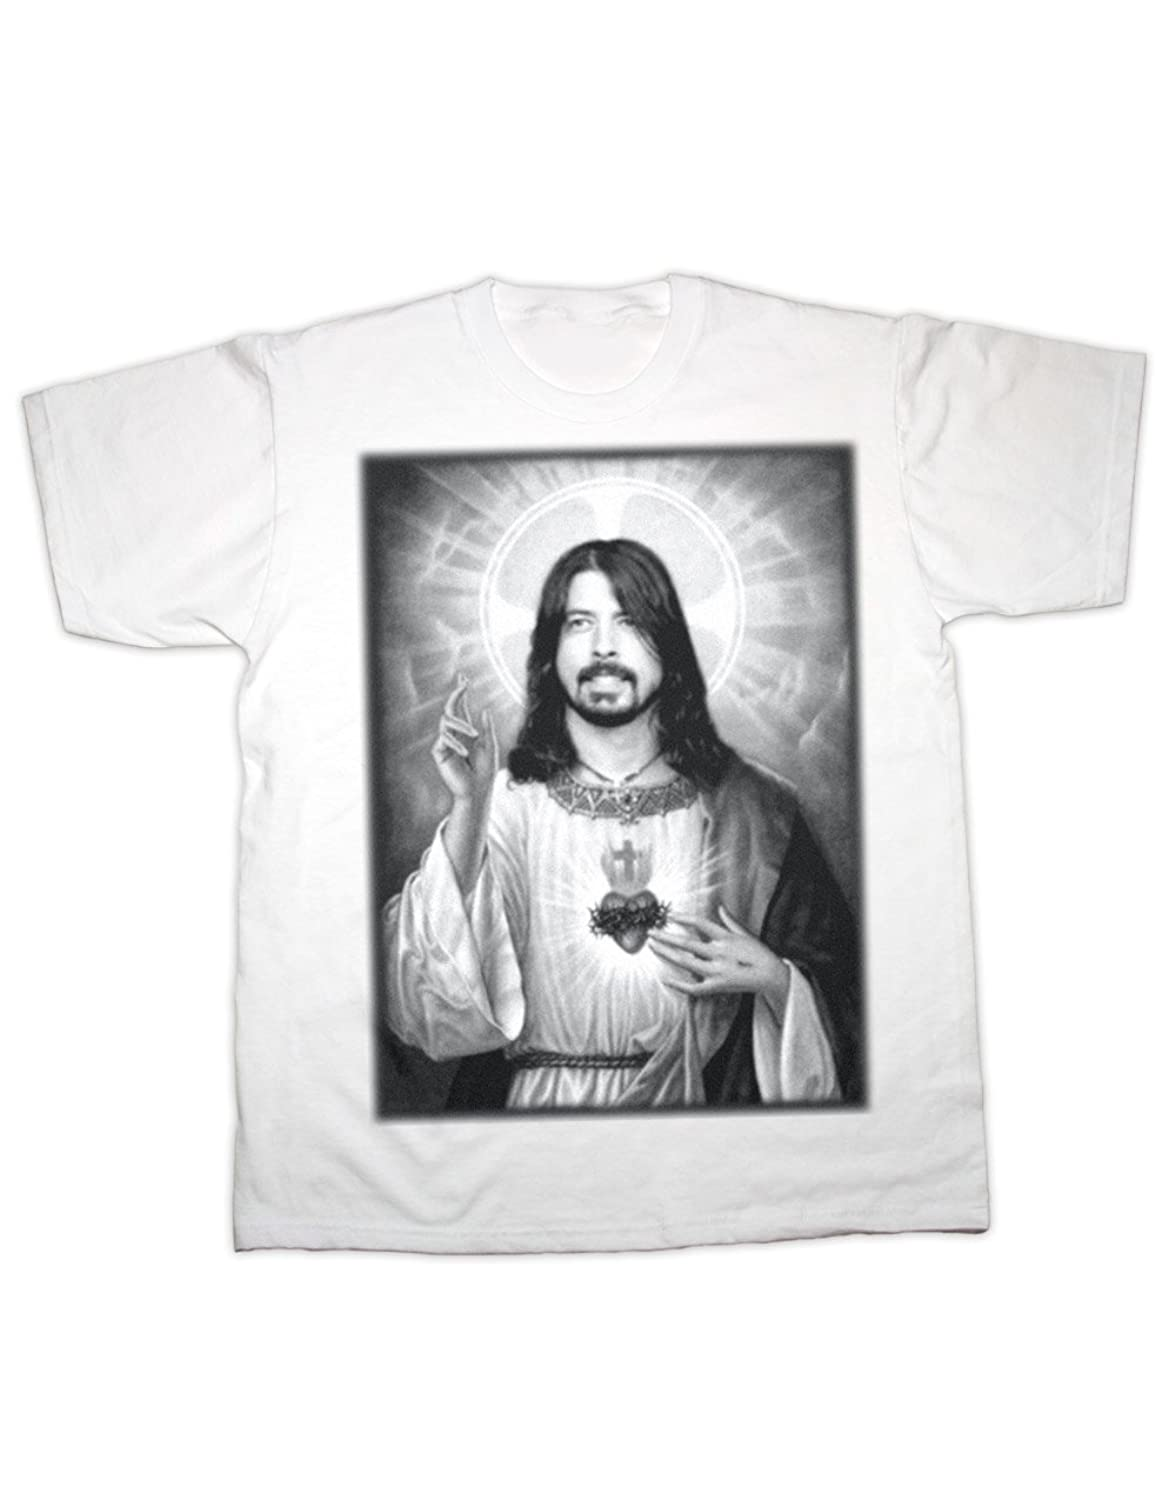 Sherbet Dip Grohl the Saviour T-Shirt. All Sizes. 100% Cotton